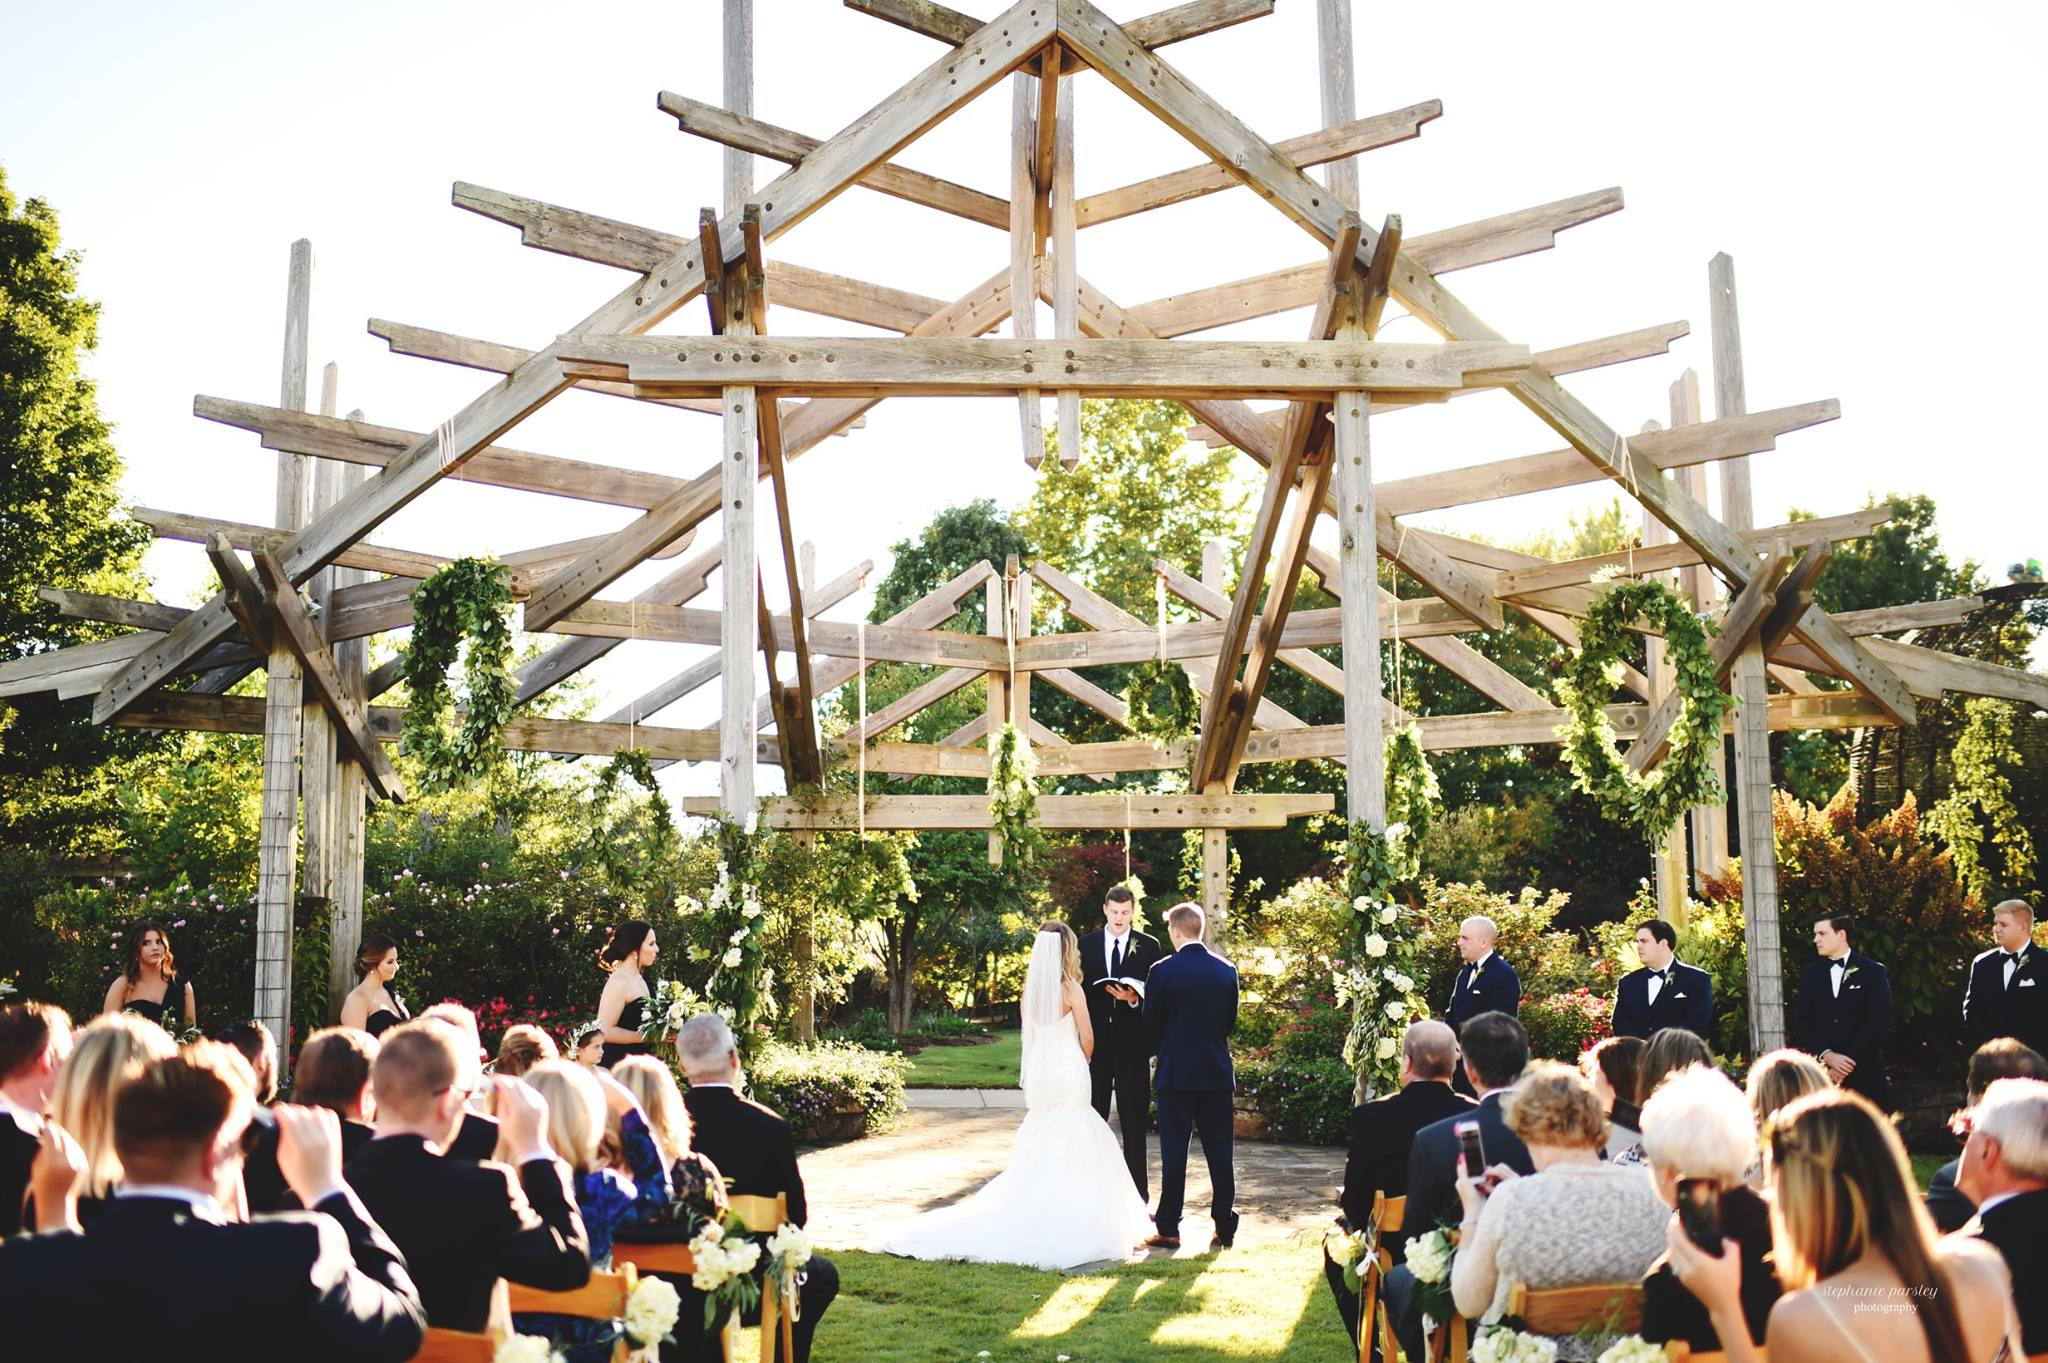 Weddings Private Events Botanical Garden Of The Ozarks